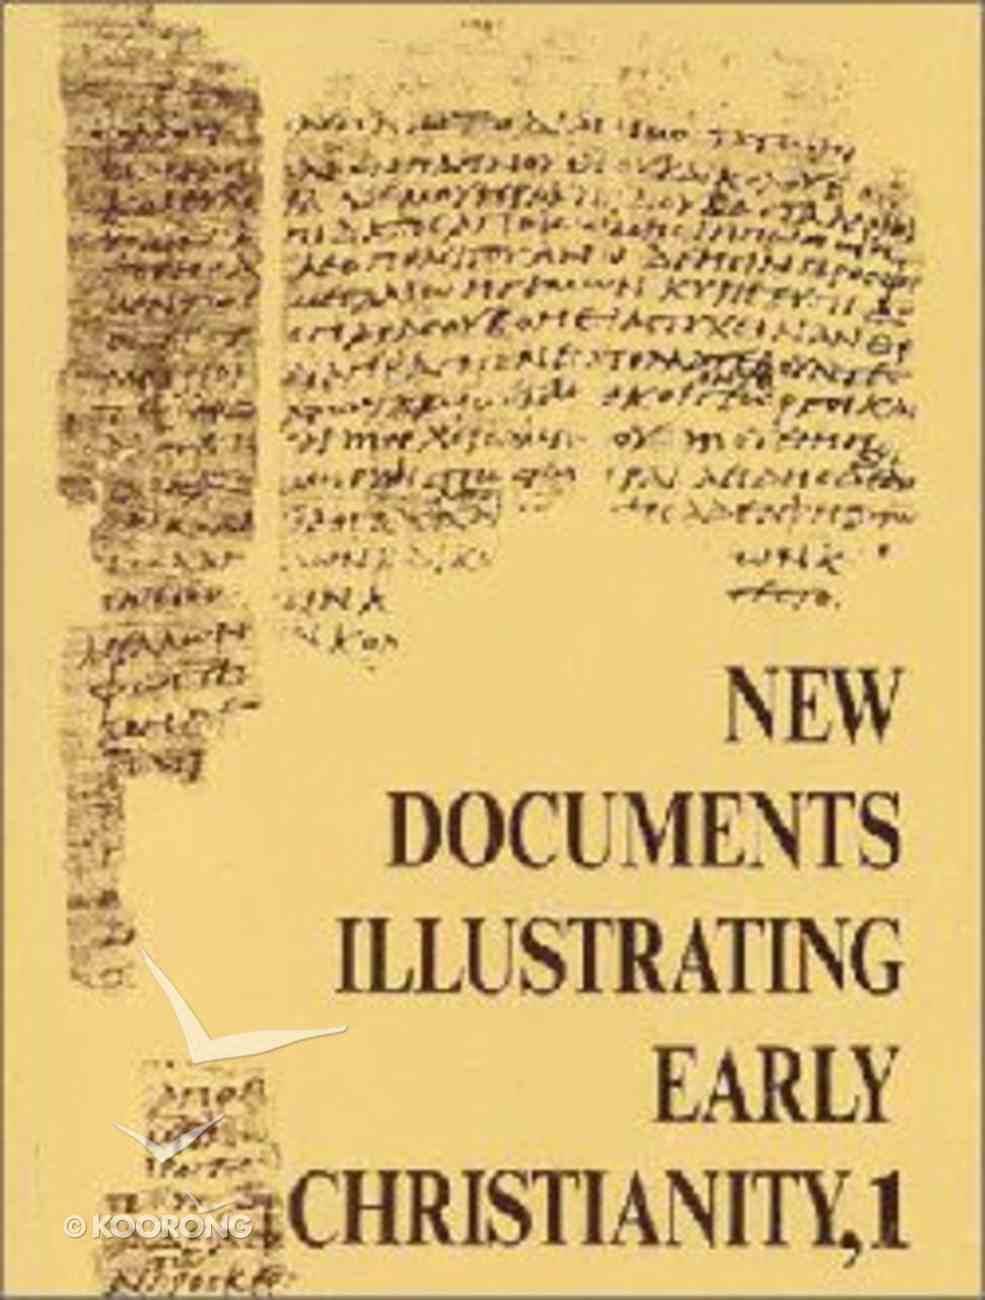 New Documents Illustrating Early Christianity (New Documents Illustrating Early Christianity Series) Paperback